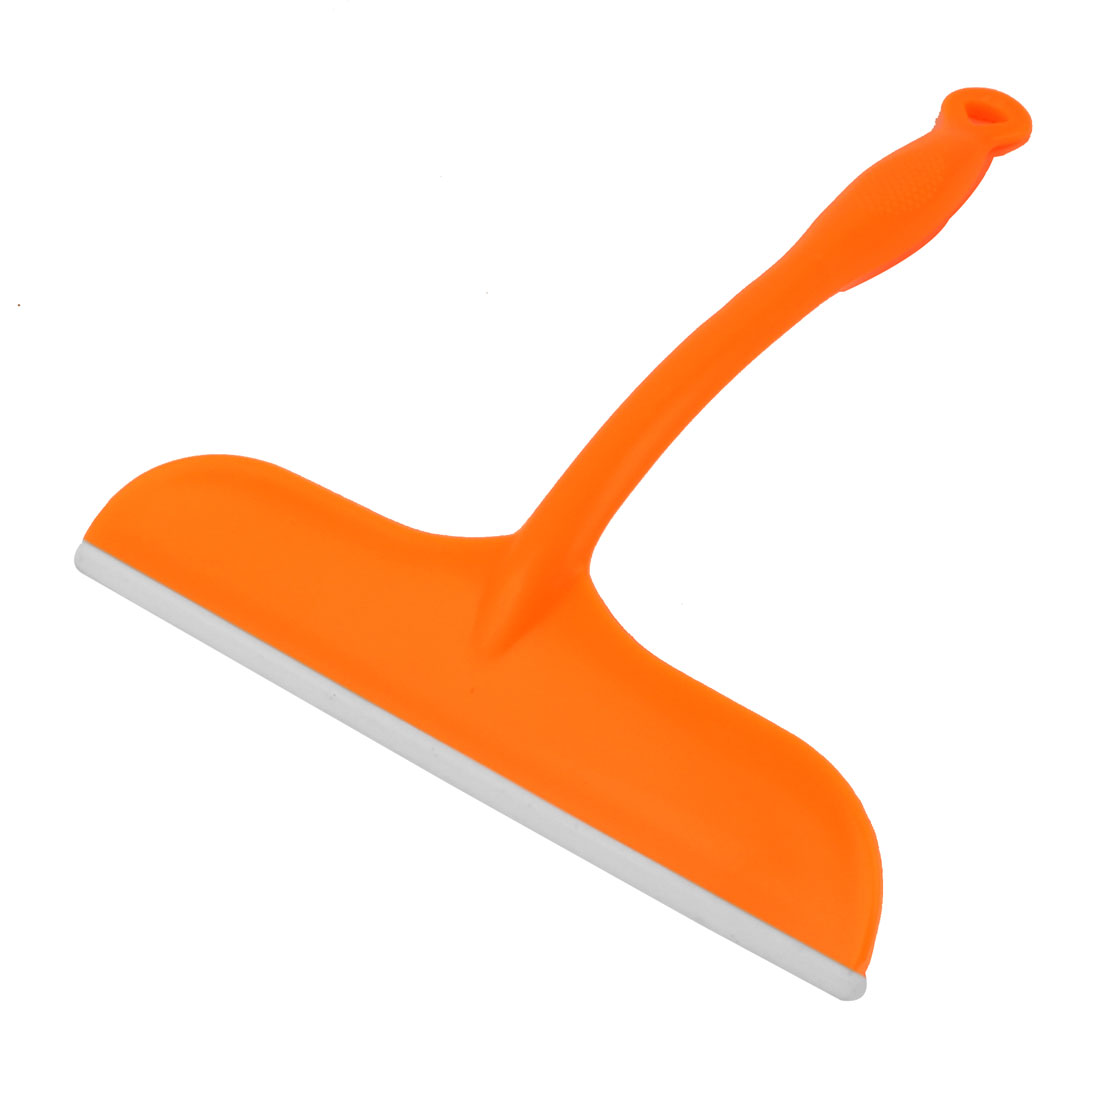 Household Kitchen Car Auto Window Glass Mirror Cleaning Tool Wiper Scraper Brush Squeegee Orange